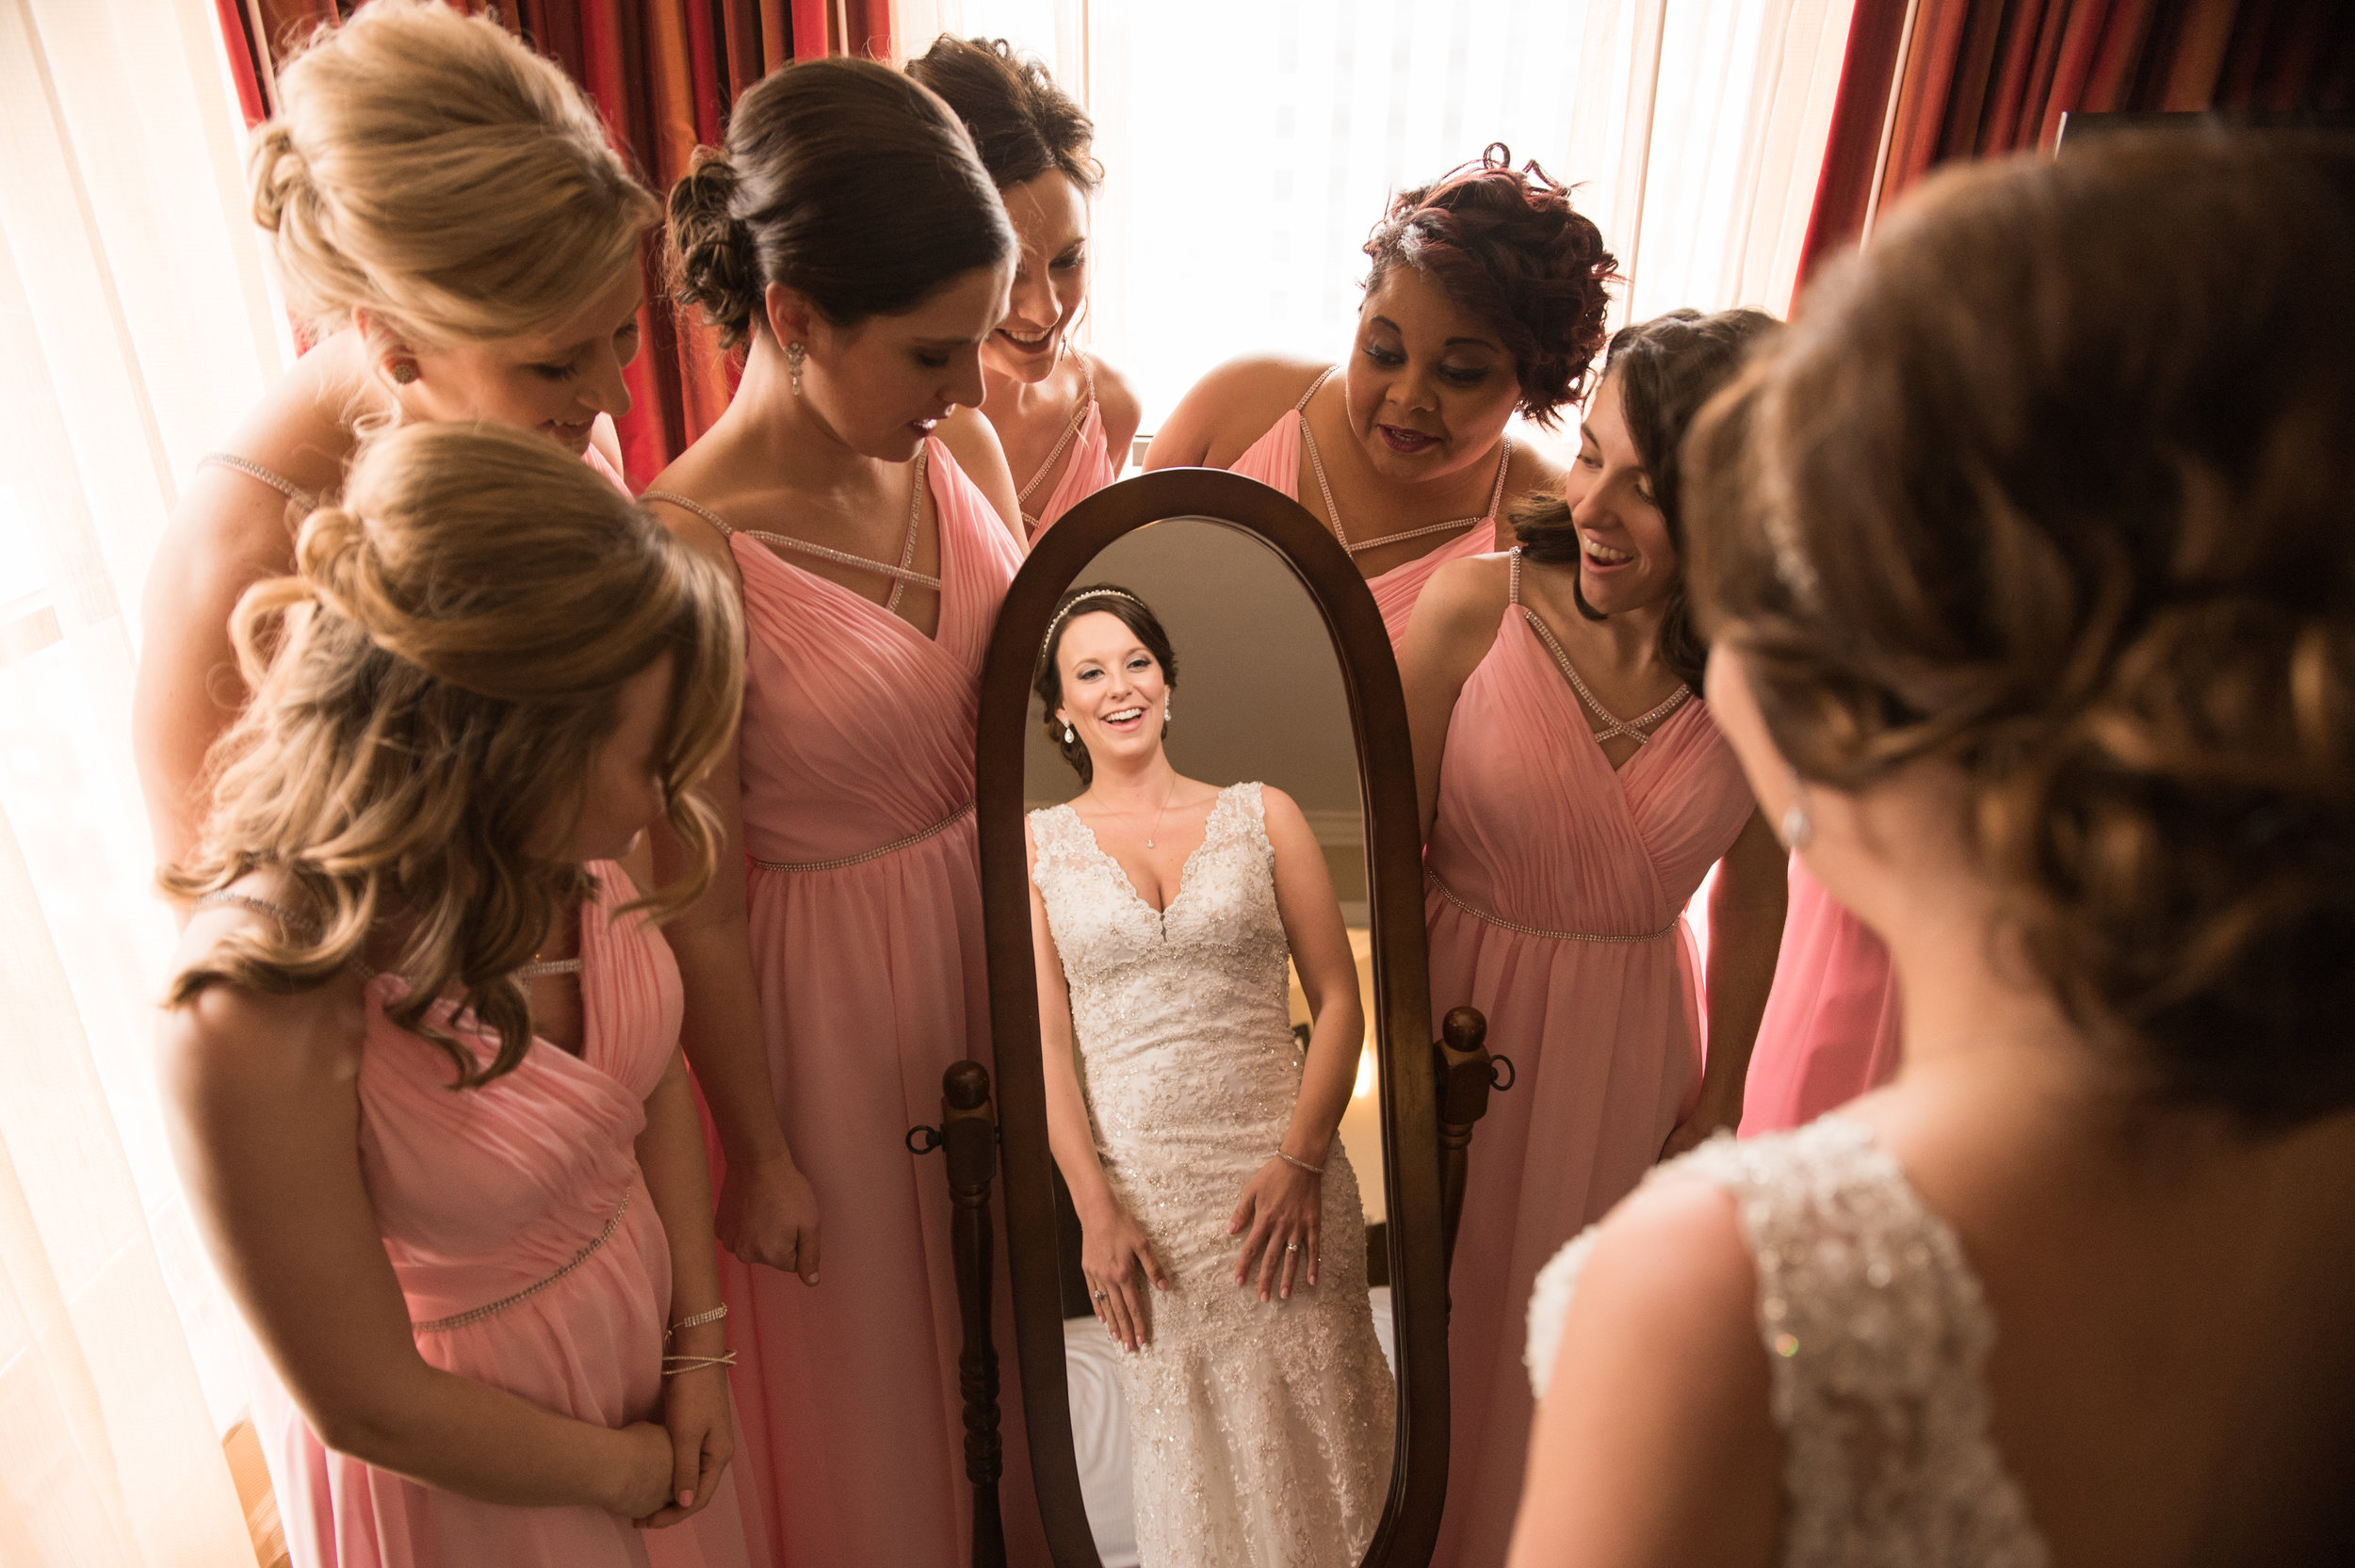 bride-bridesmaids-mirror-getting-ready-reflection-pink-dresses.jpg